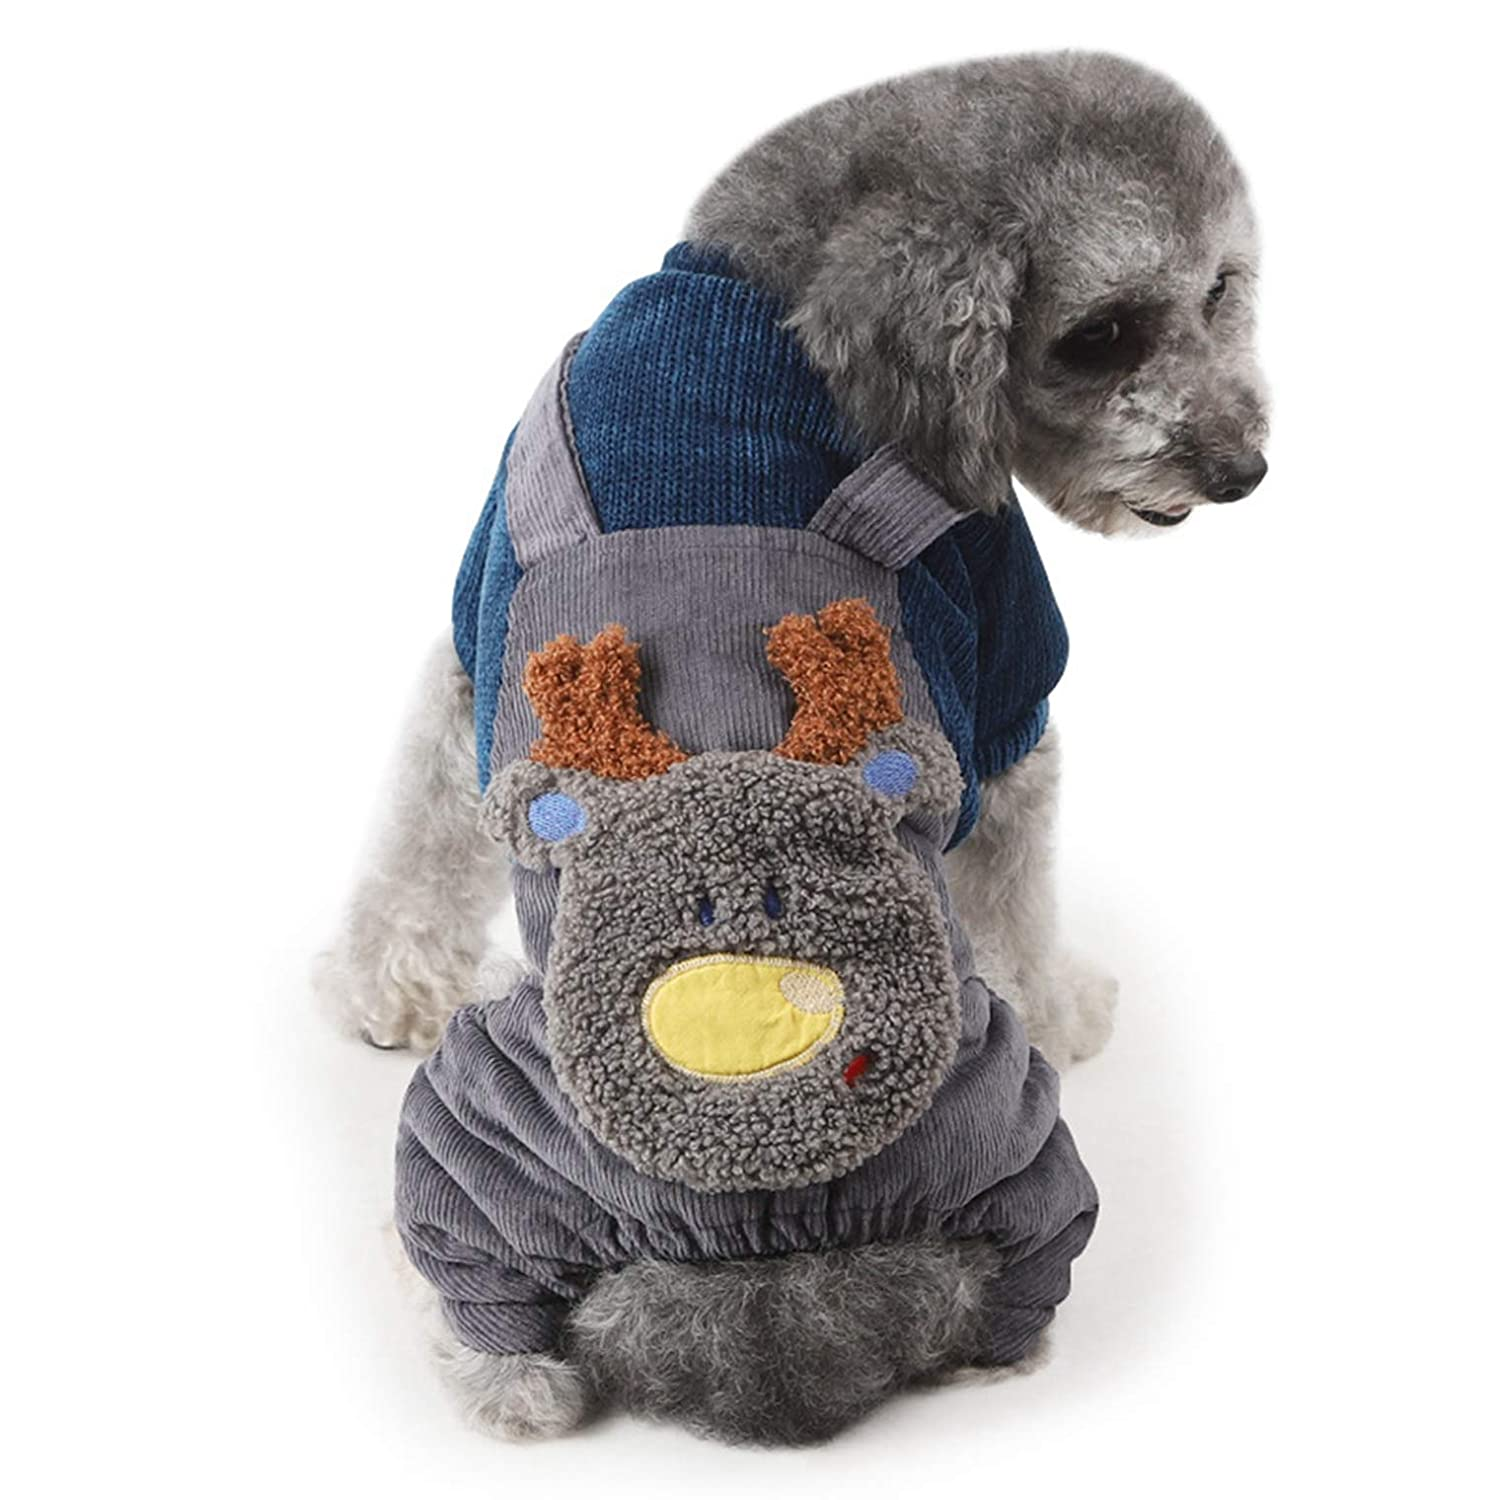 blueE XL blueE XL SENERY Winter Pet Dog Clothing Coat,Thicken Knitted Pet Fake Rompers Warm Dog Coat Jacket Jumpsuit Outfit